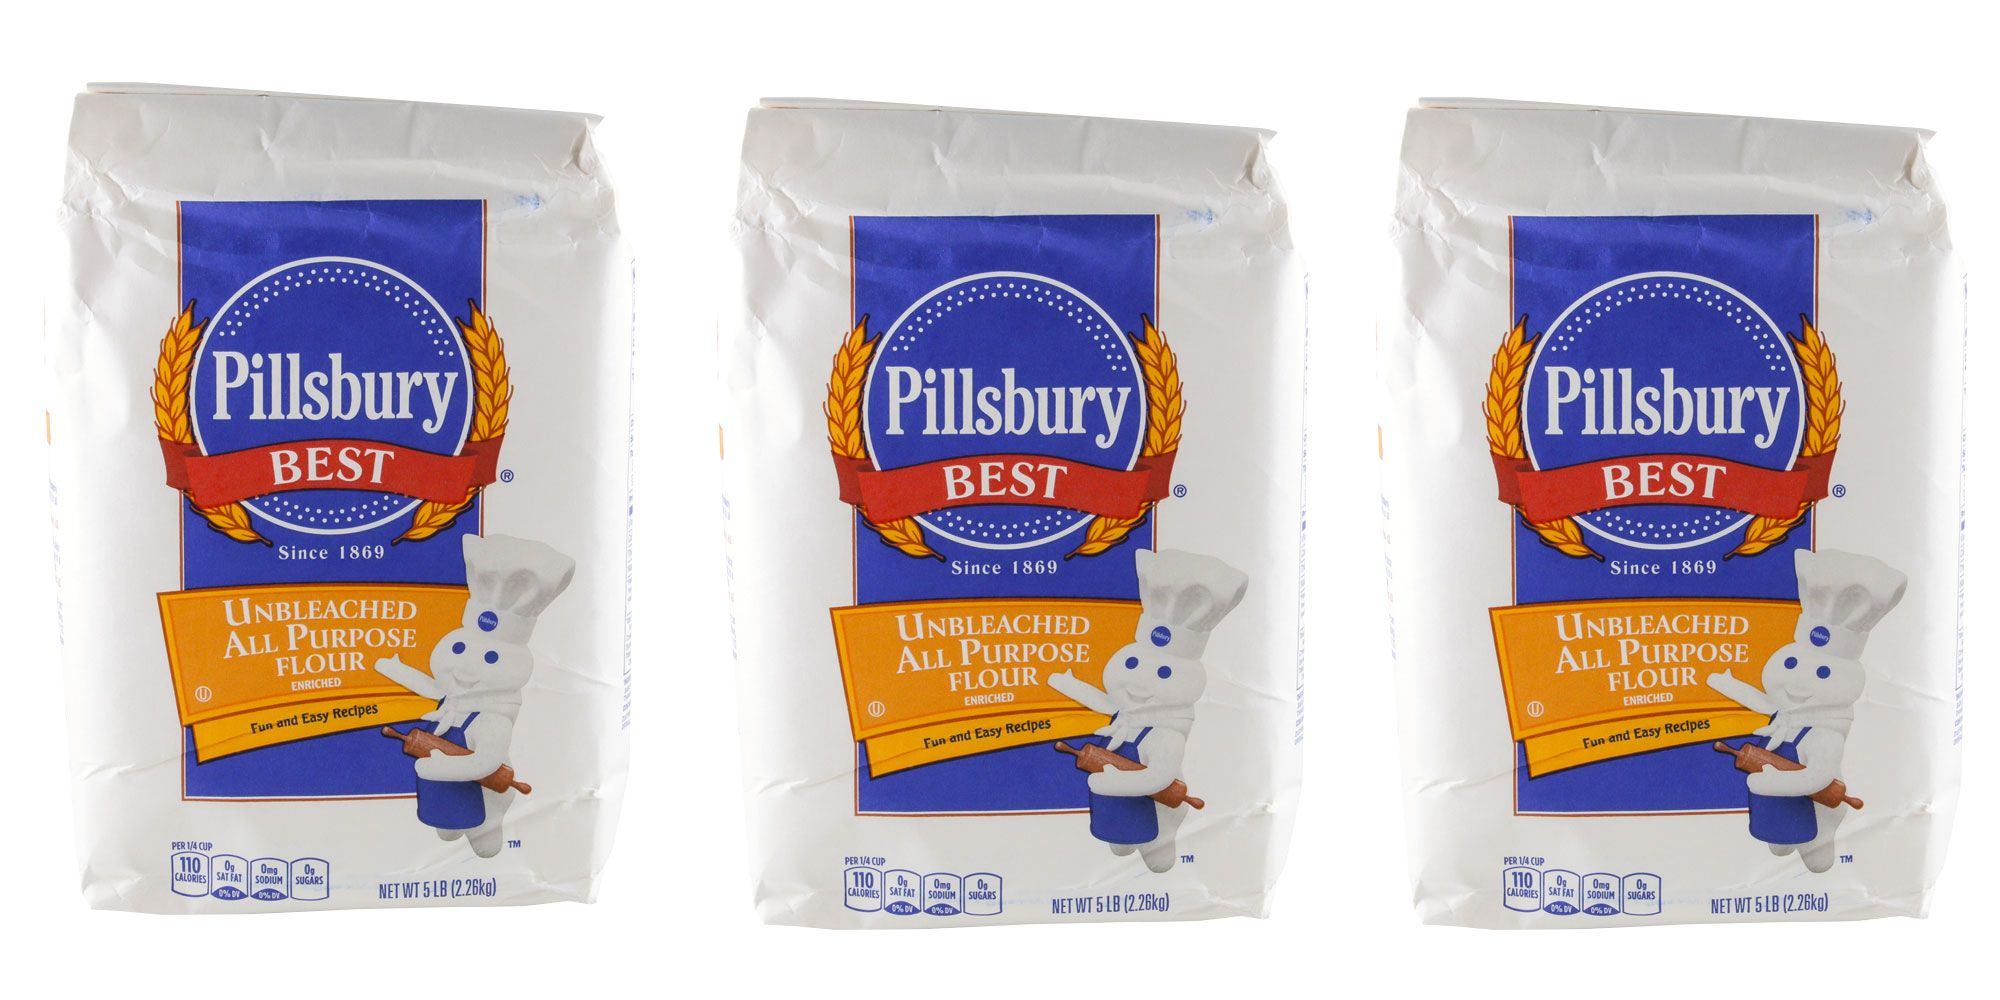 Pillsbury Flour Recall Due To Salmonella Risk